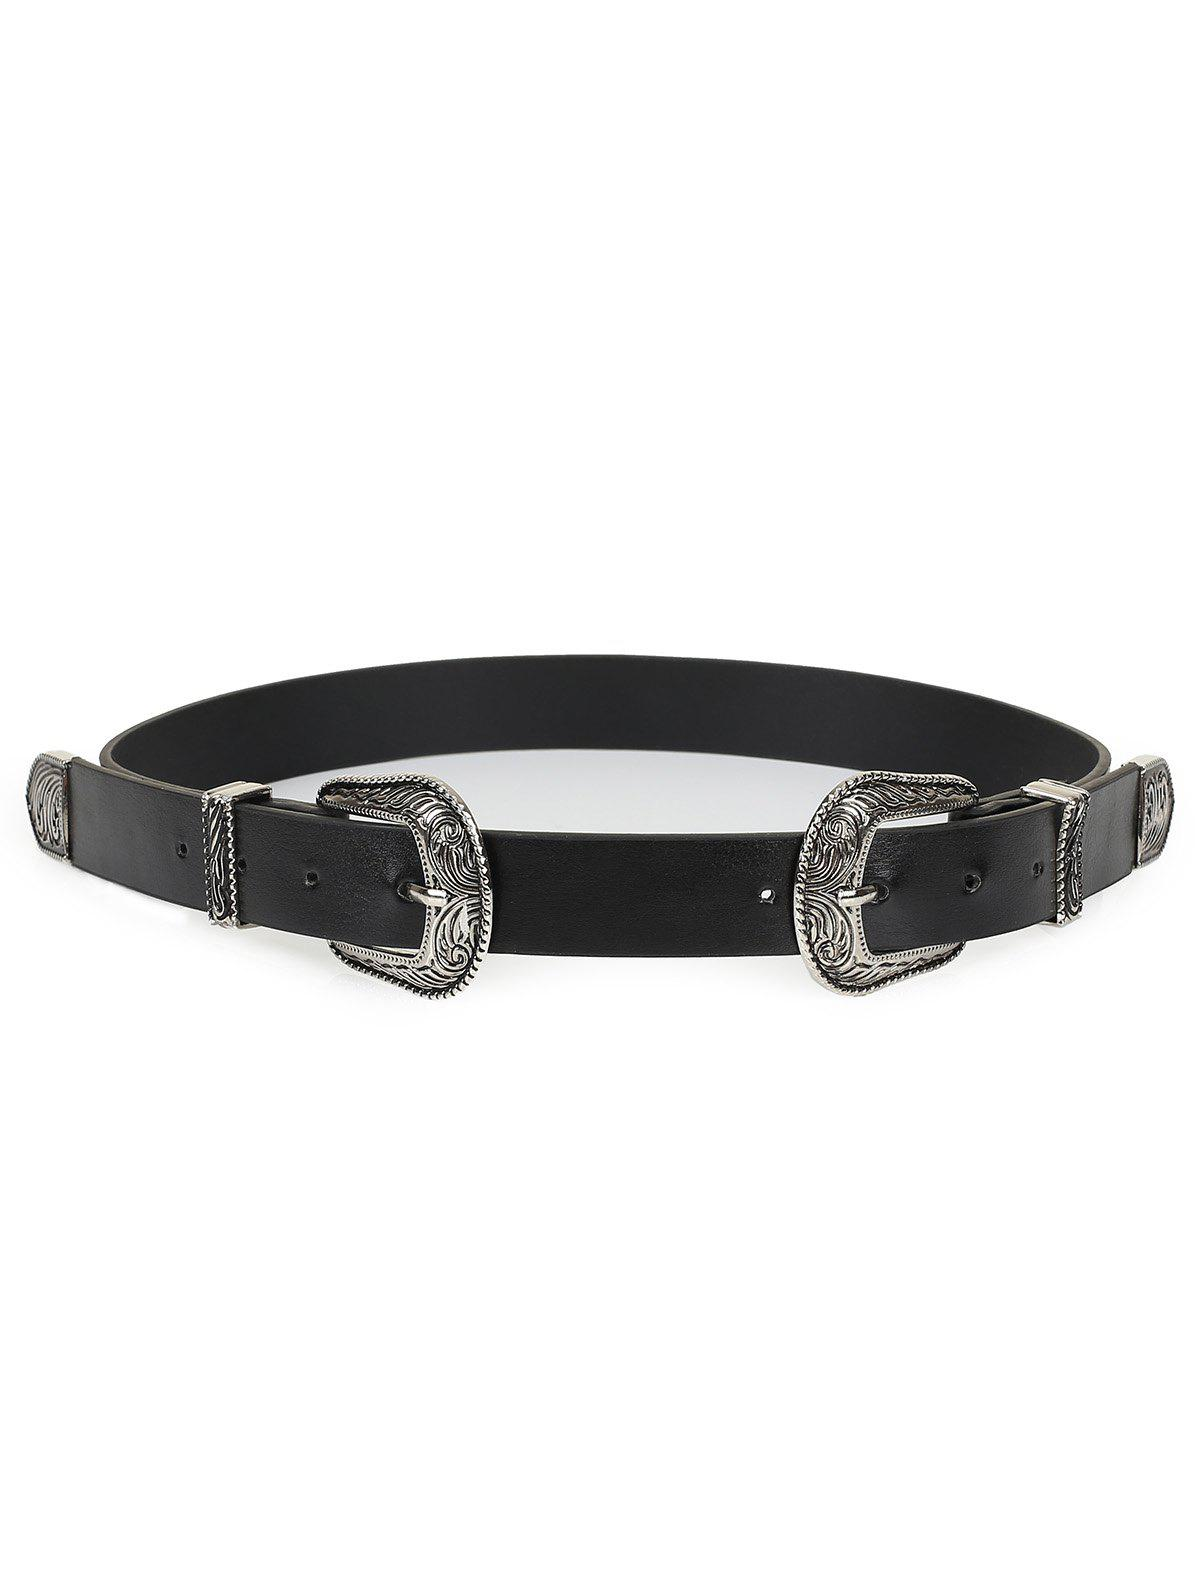 New Double Metal Buckle Faux Leather Waist Belt